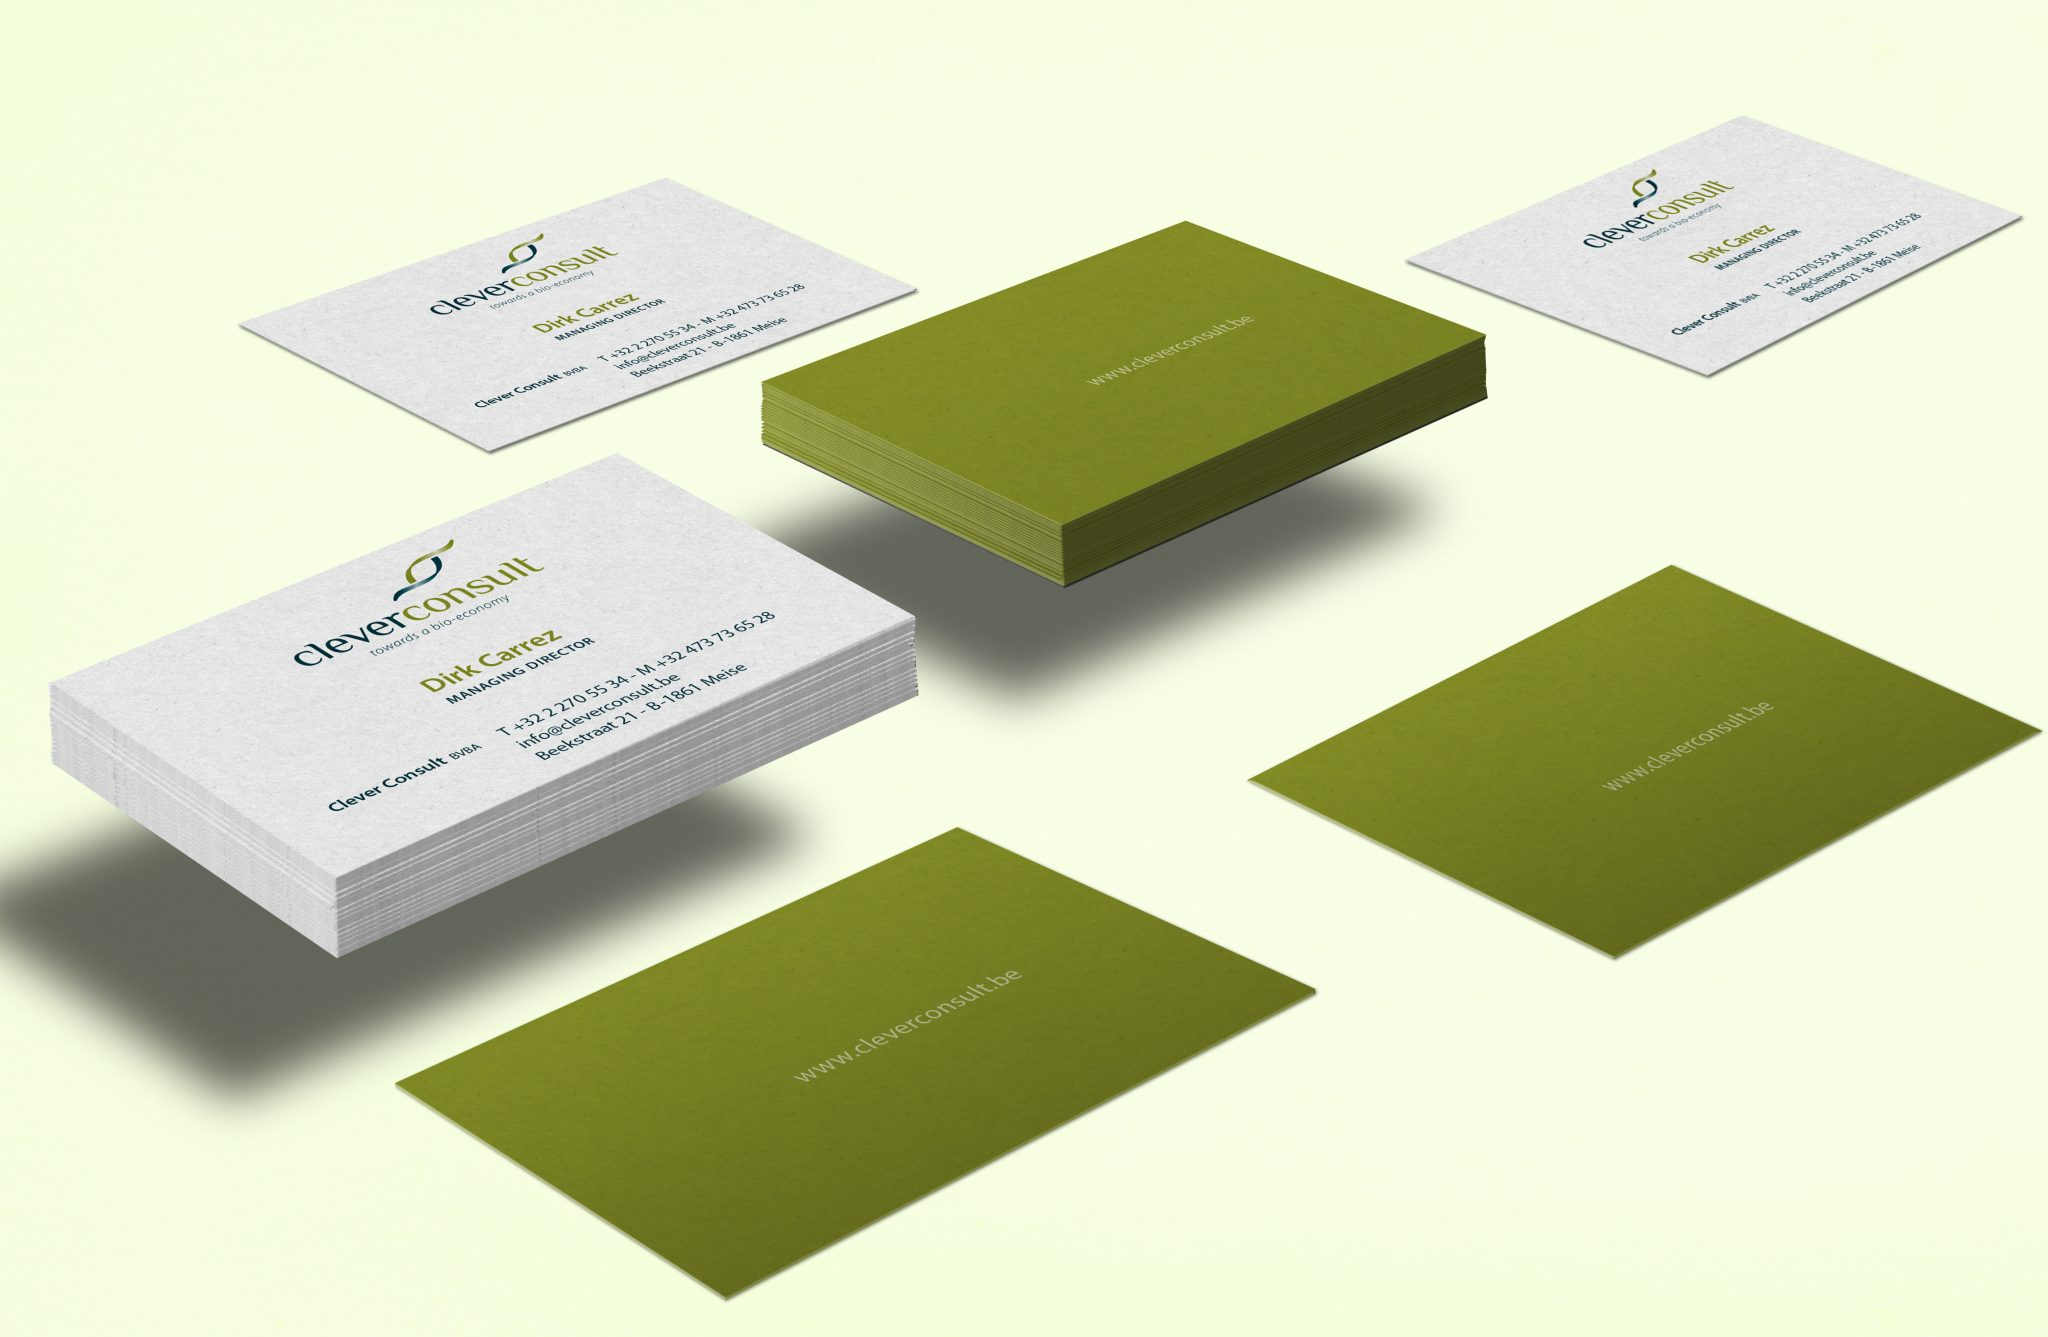 studio witvrouwen branding design graphic color visual identity data design clever consult business card